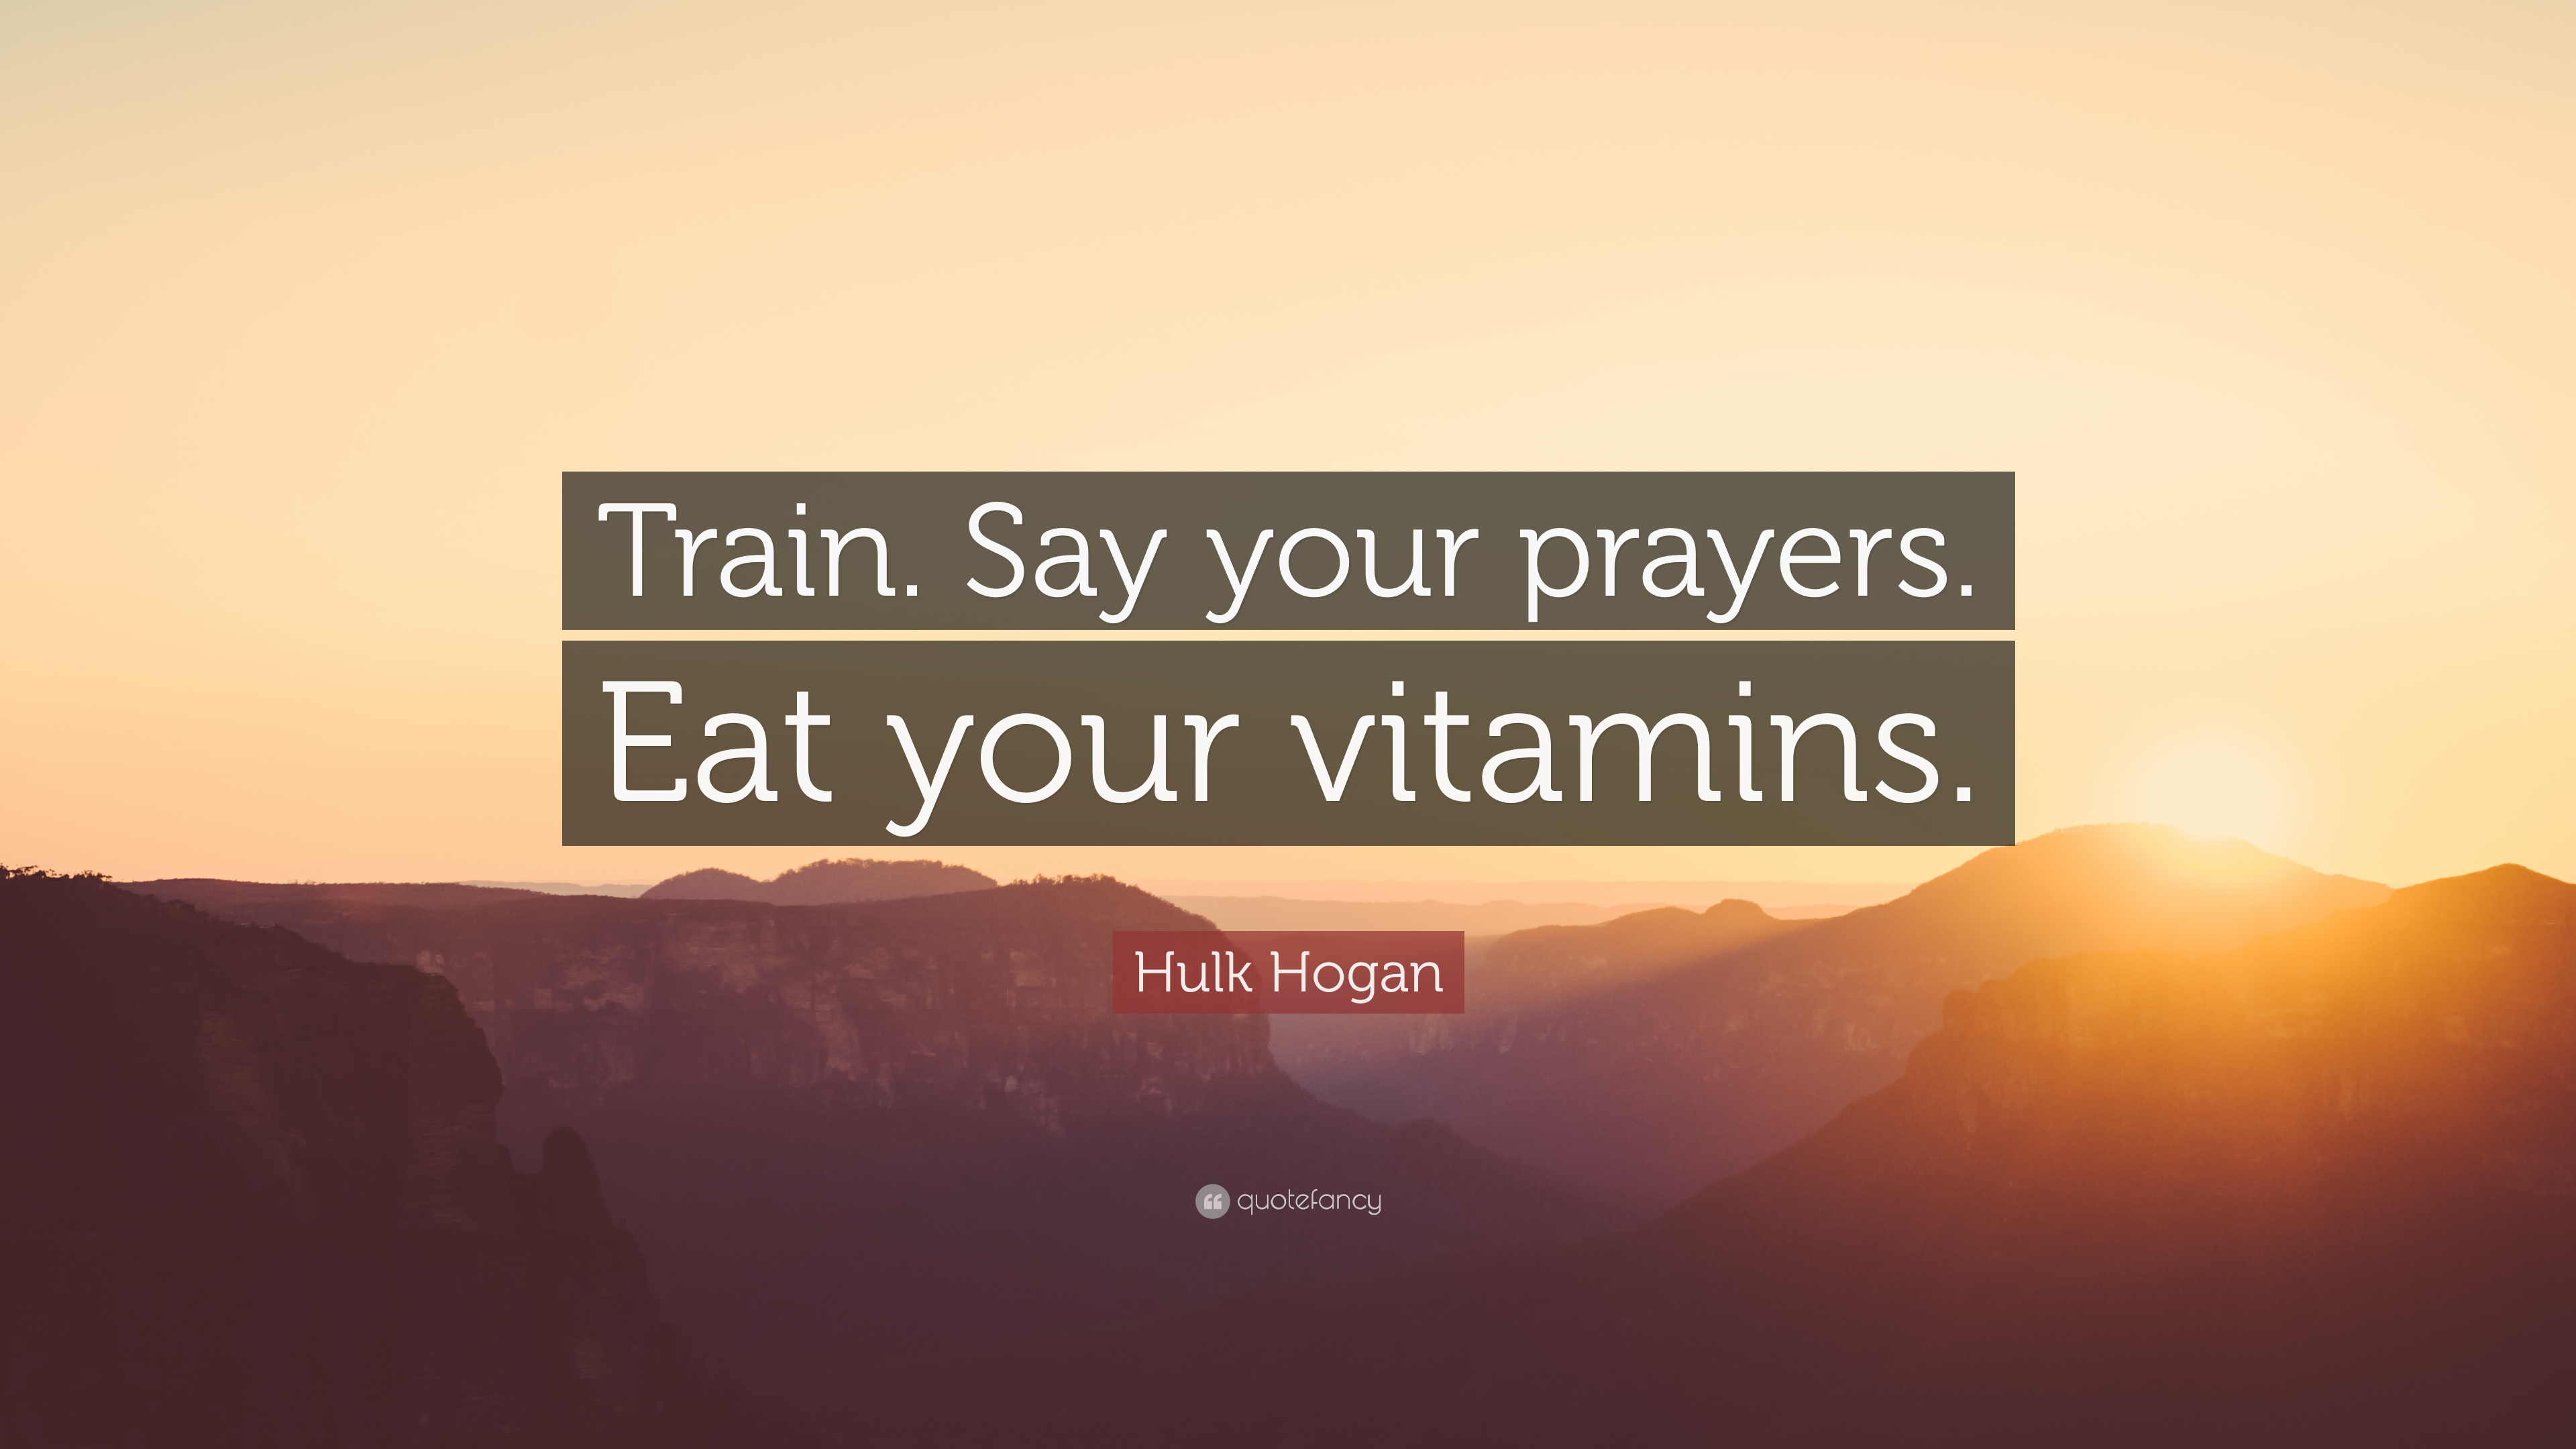 Hulk Hogan Quotes Say Your Prayers